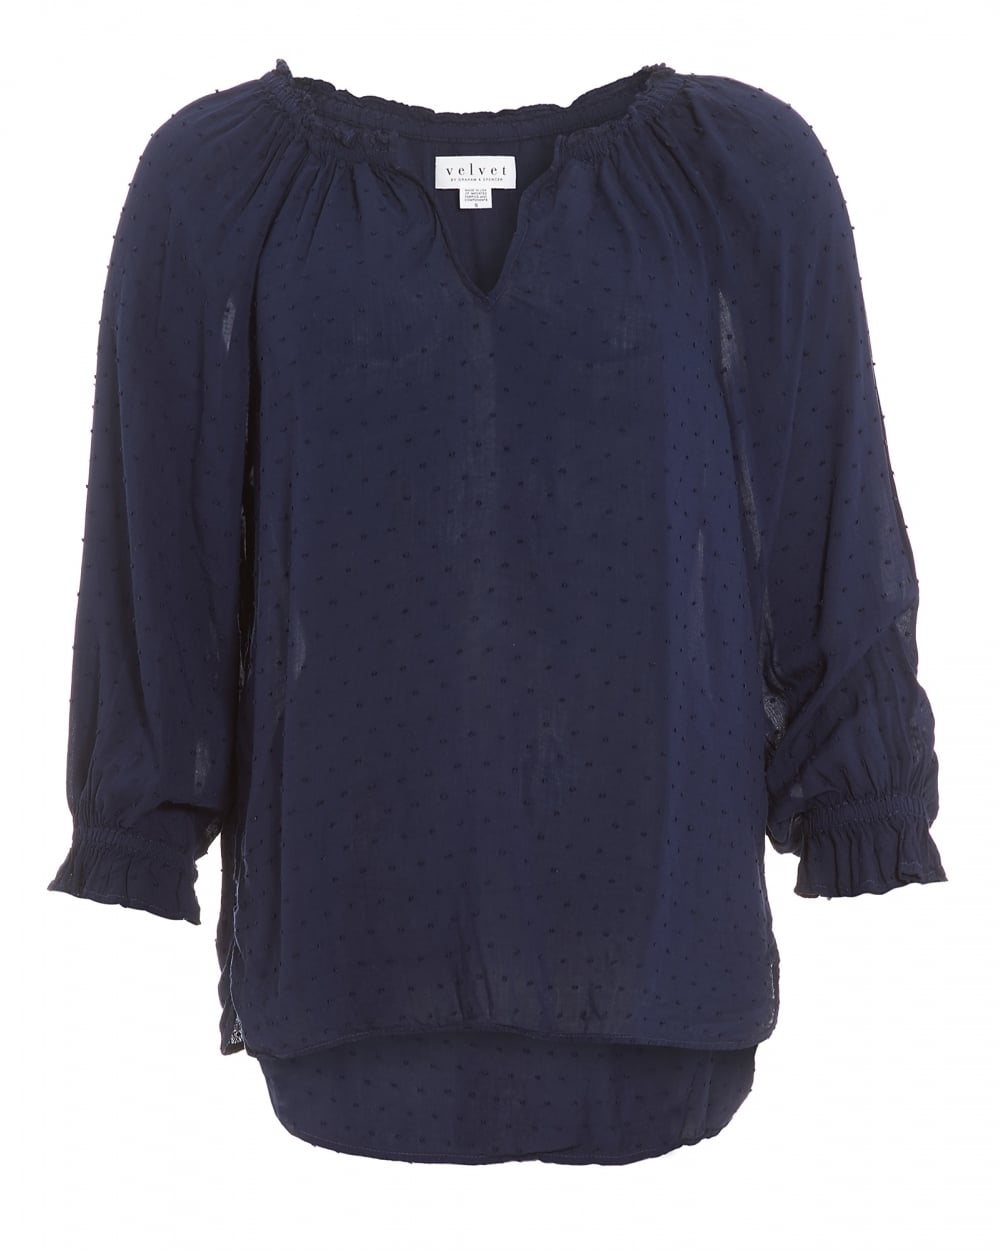 Simple Womens Navy Blue Blouses - Blouse Styles